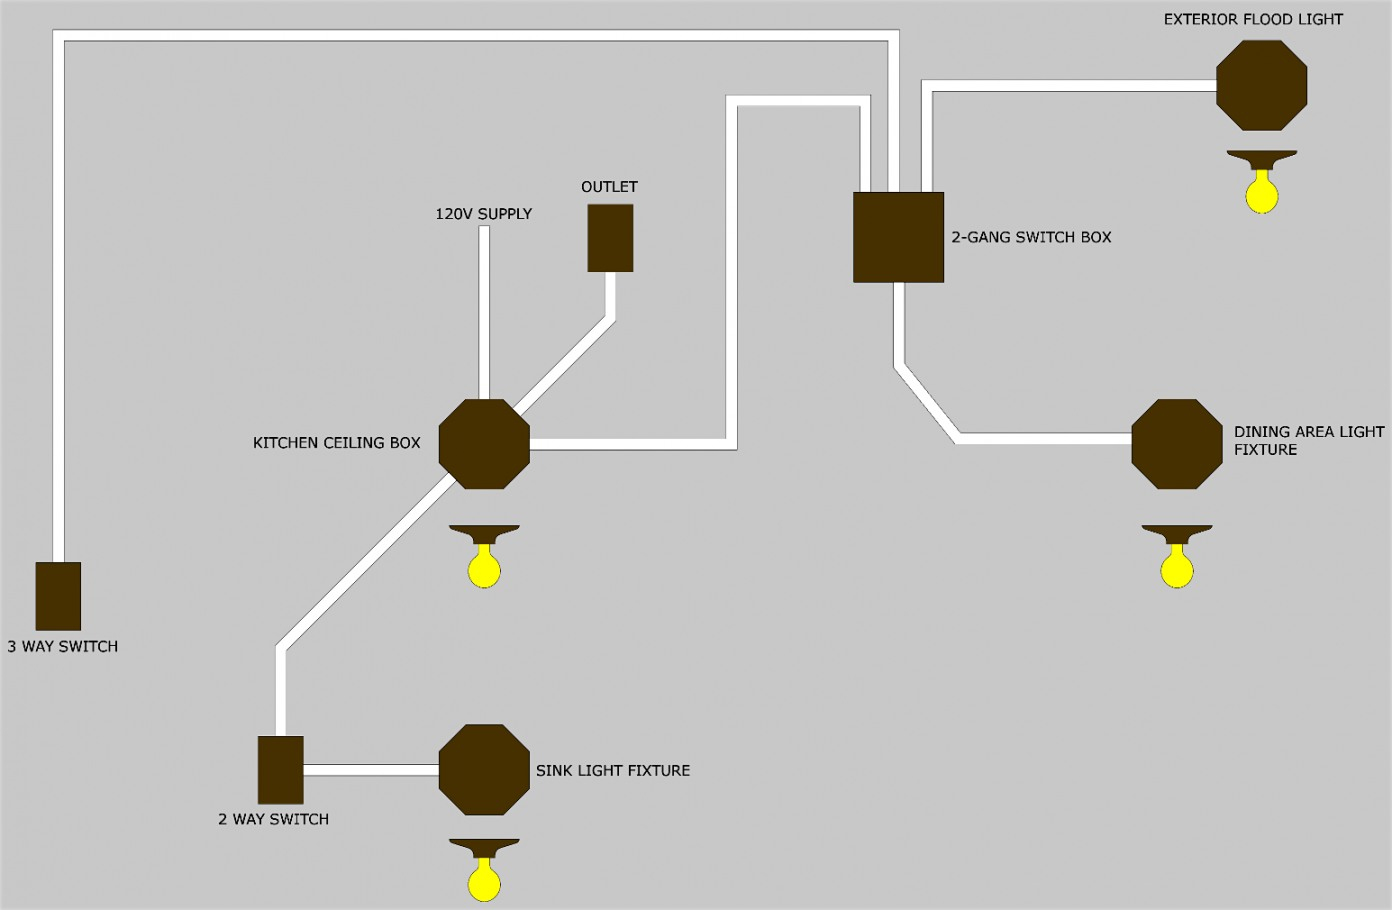 Beautiful Wiring Outside Lights Diagram How To Wire Pir Sensor Light - Flood Light Wiring Diagram